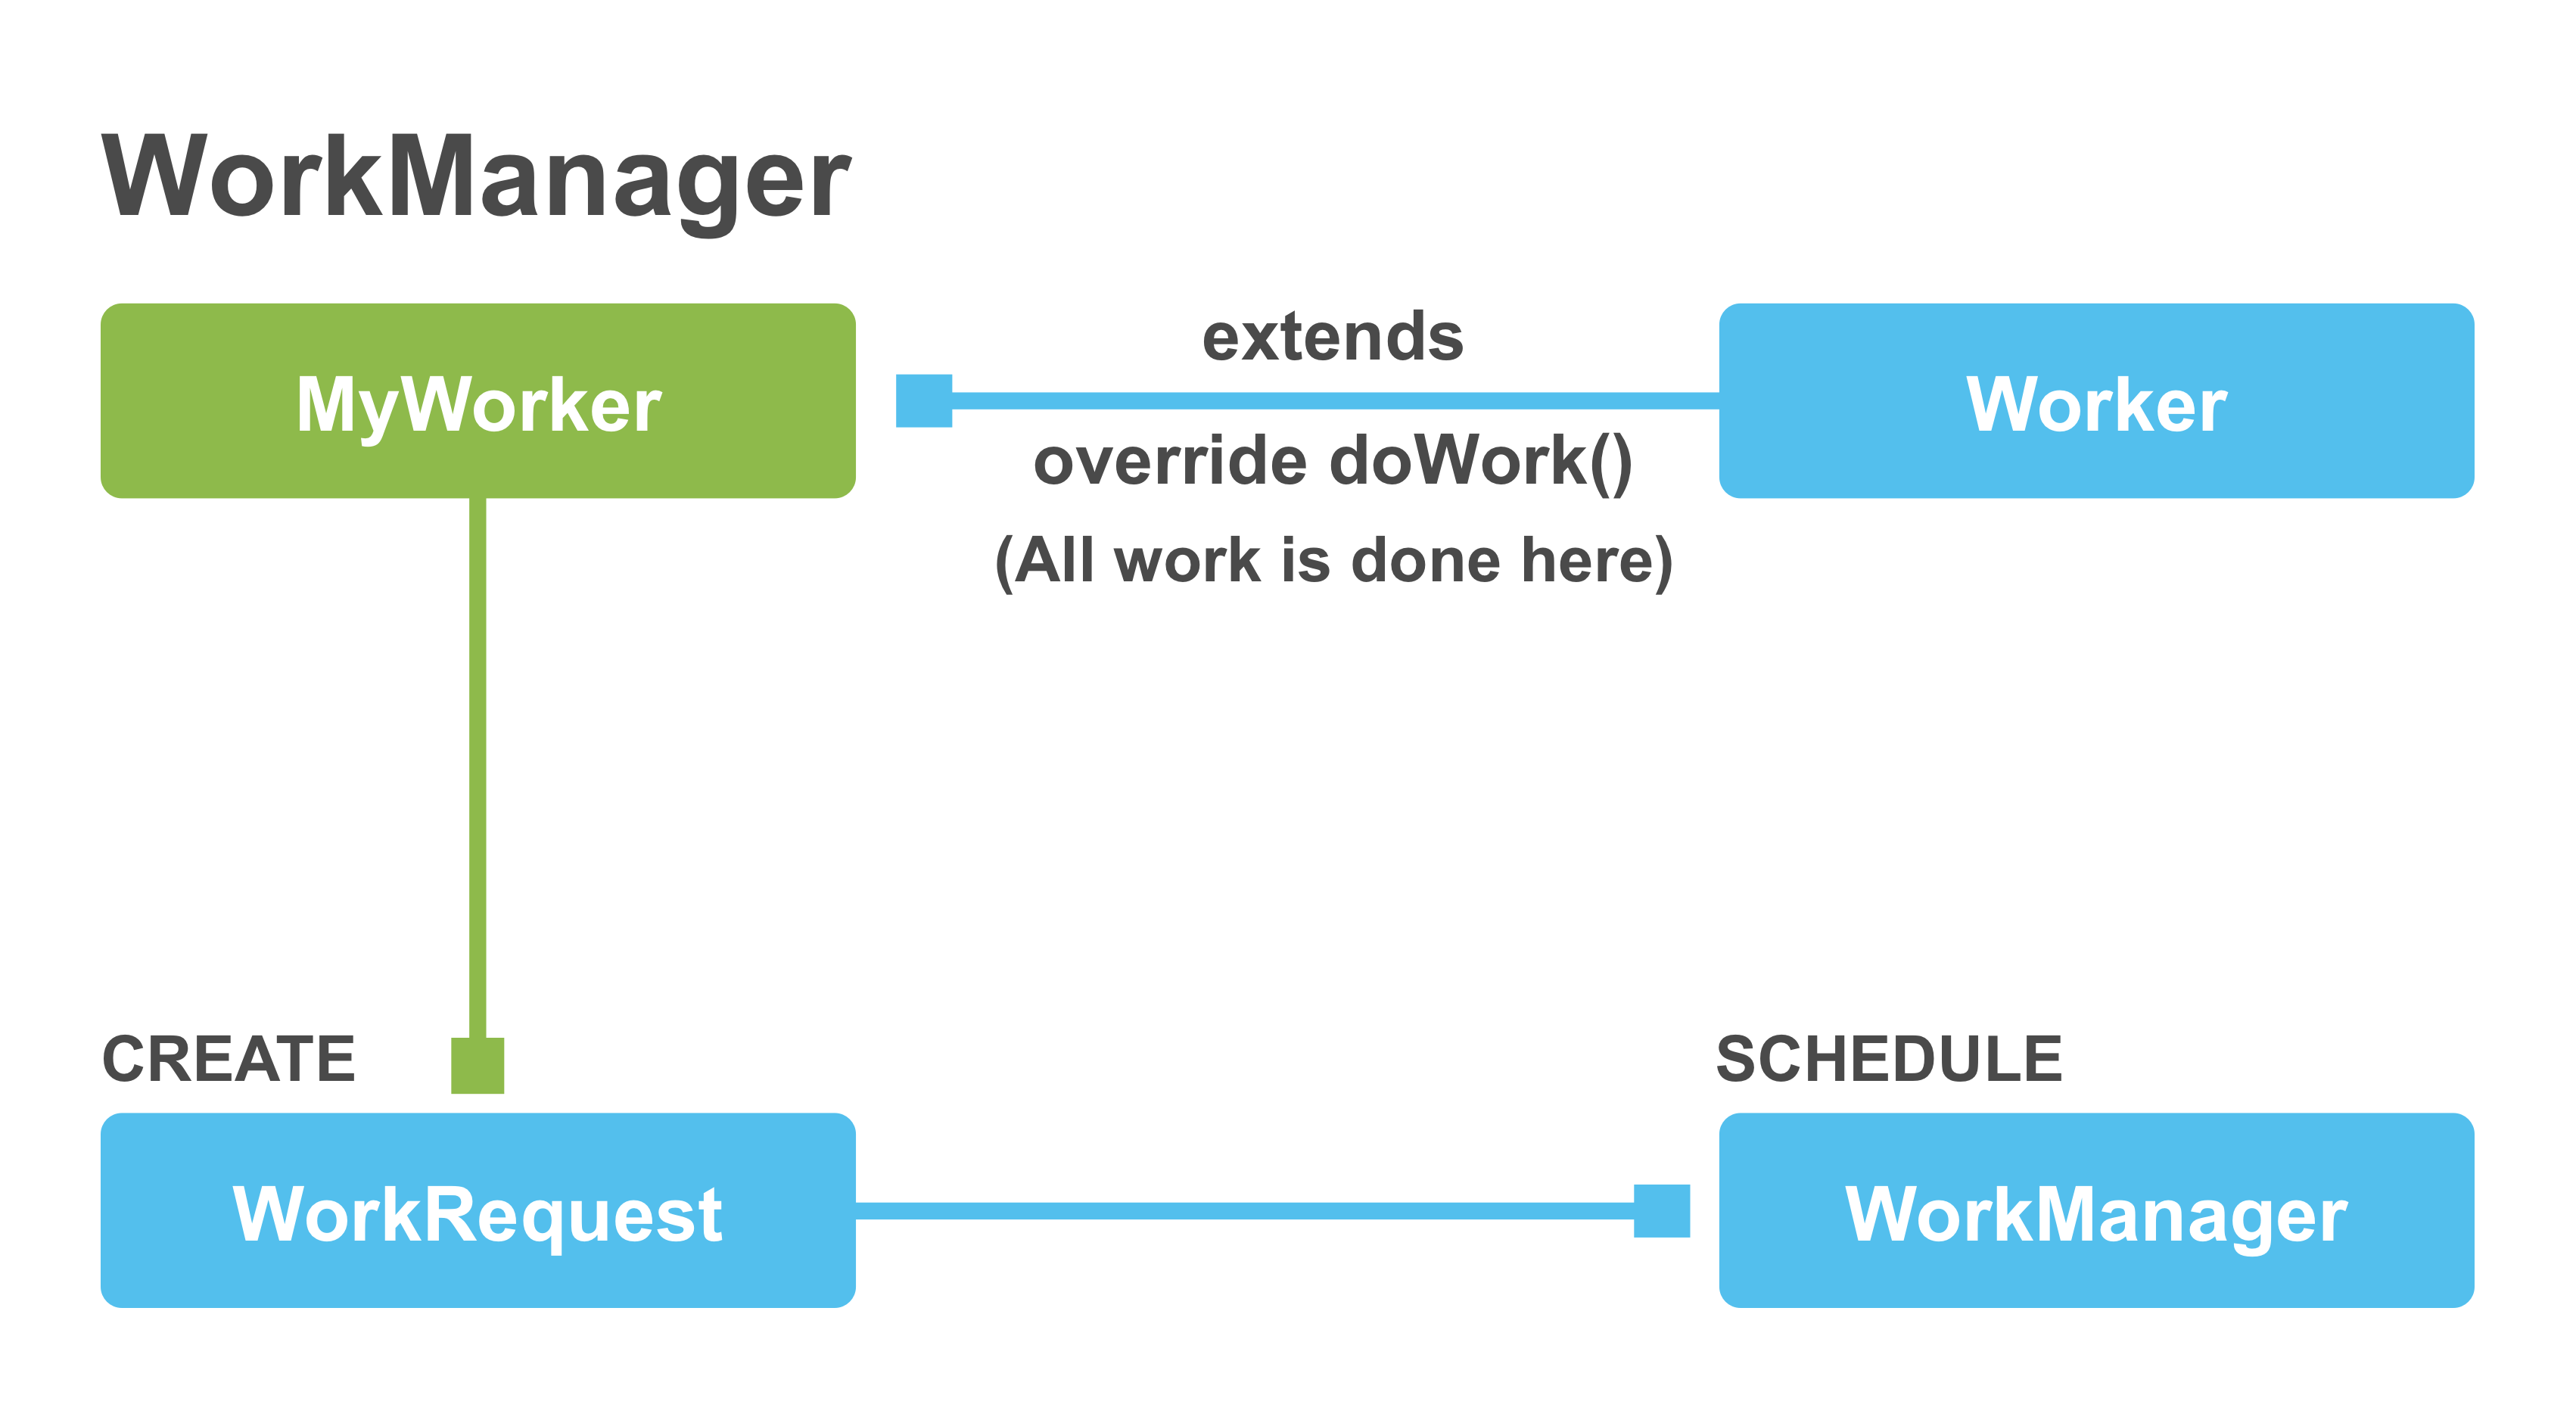 WorkManager Process Flow